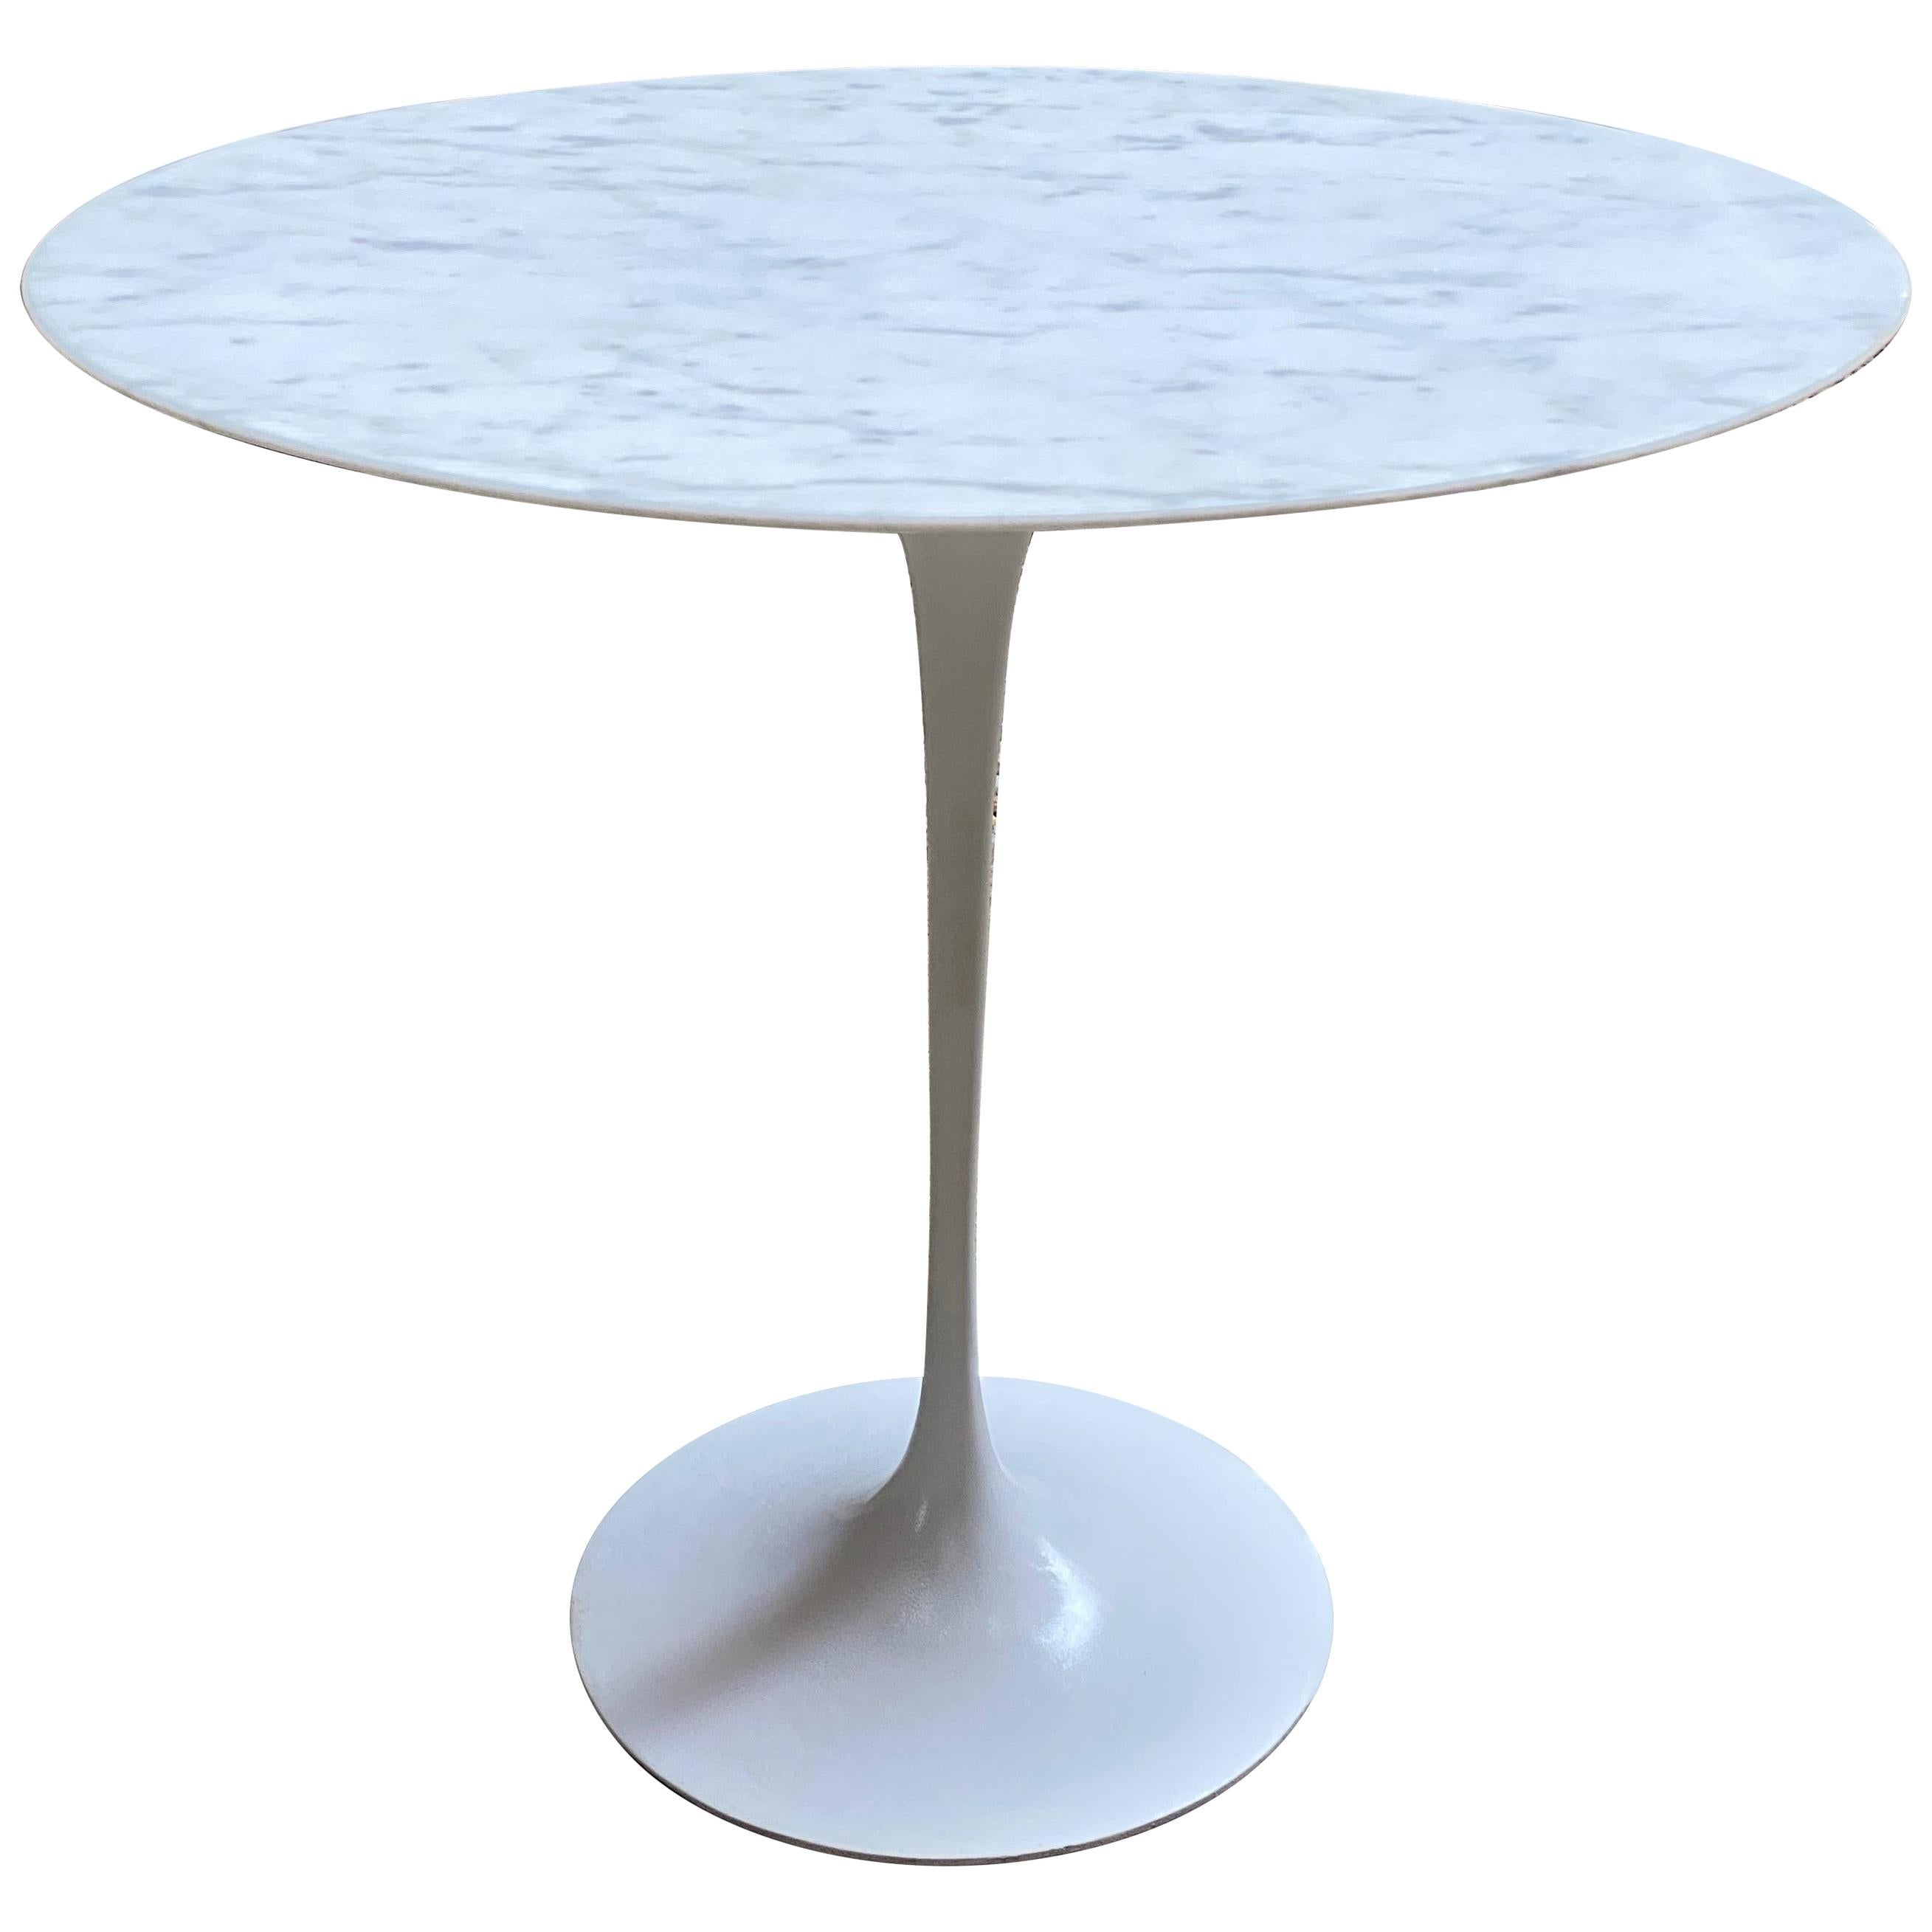 Saarinen for Knoll Ovoid Marble Tulip Base End Table